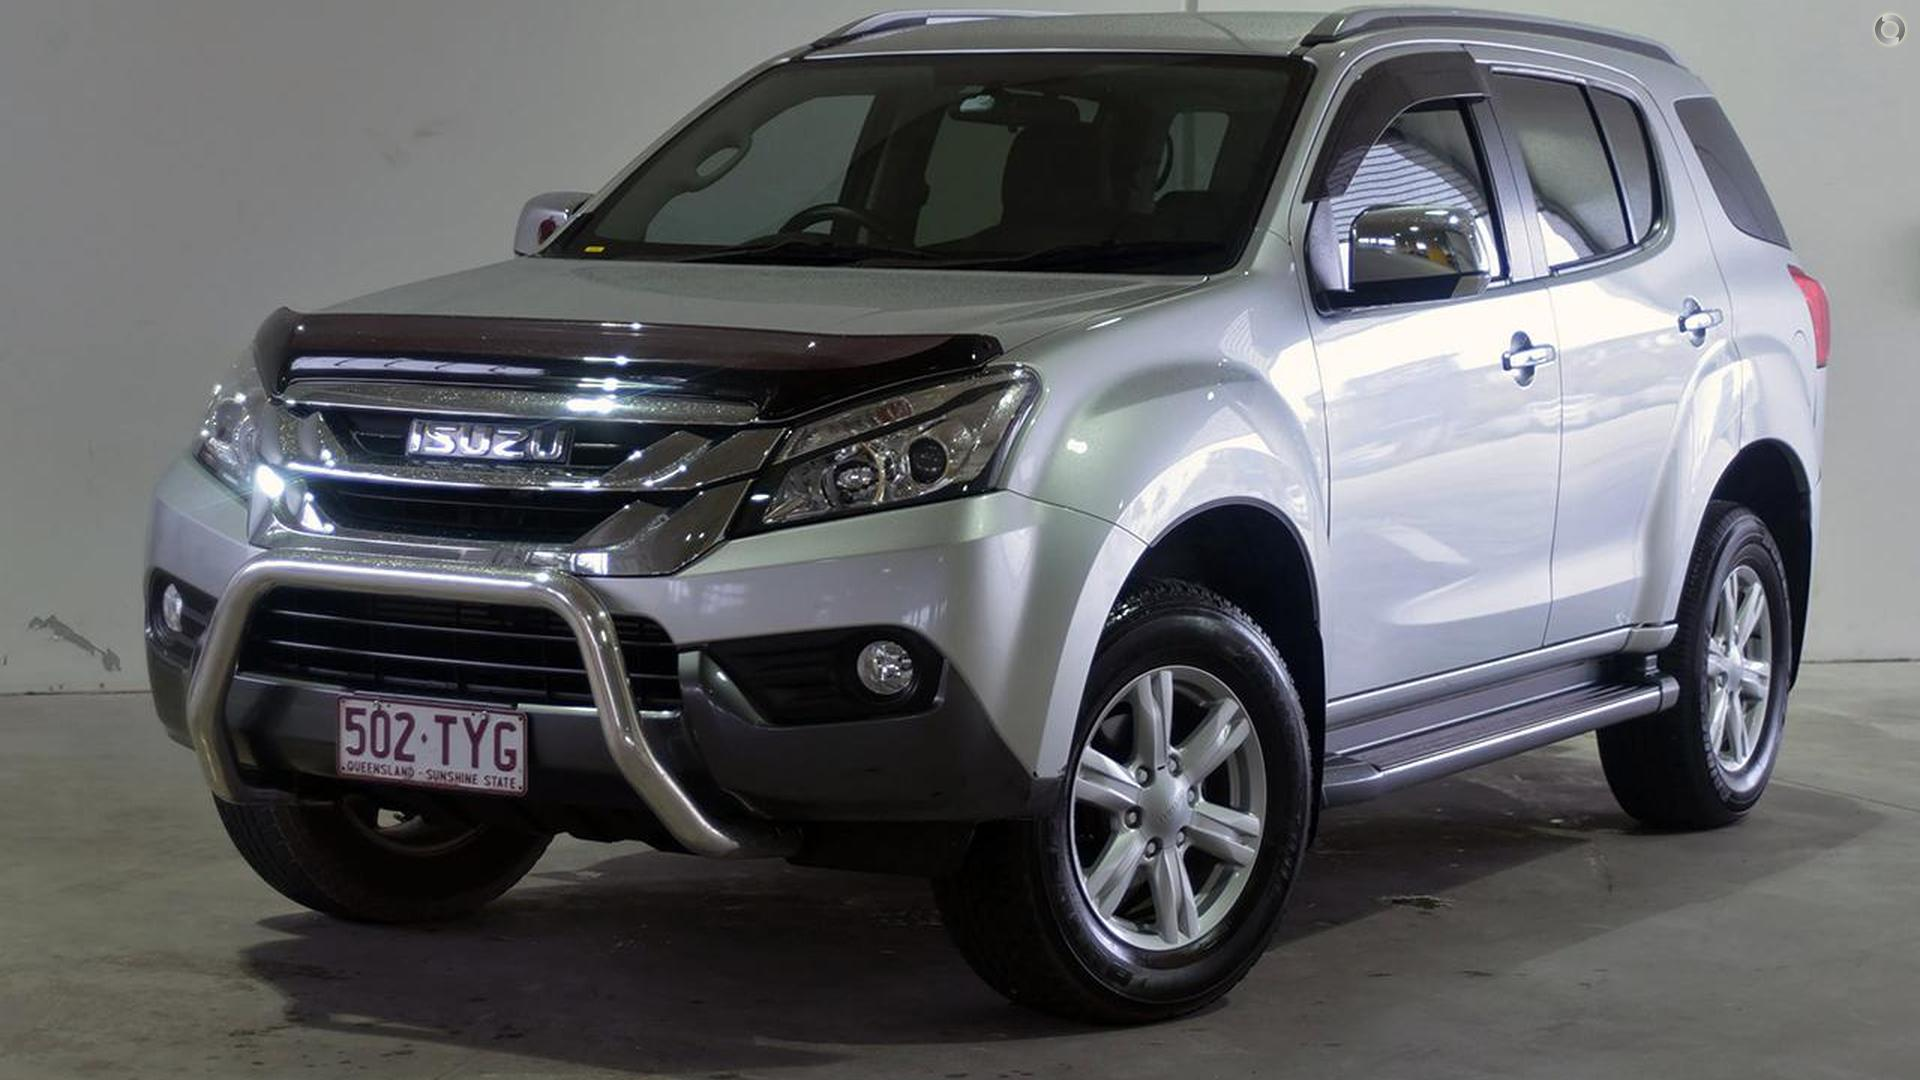 2014 Isuzu Mu-x LS-T (No Series)